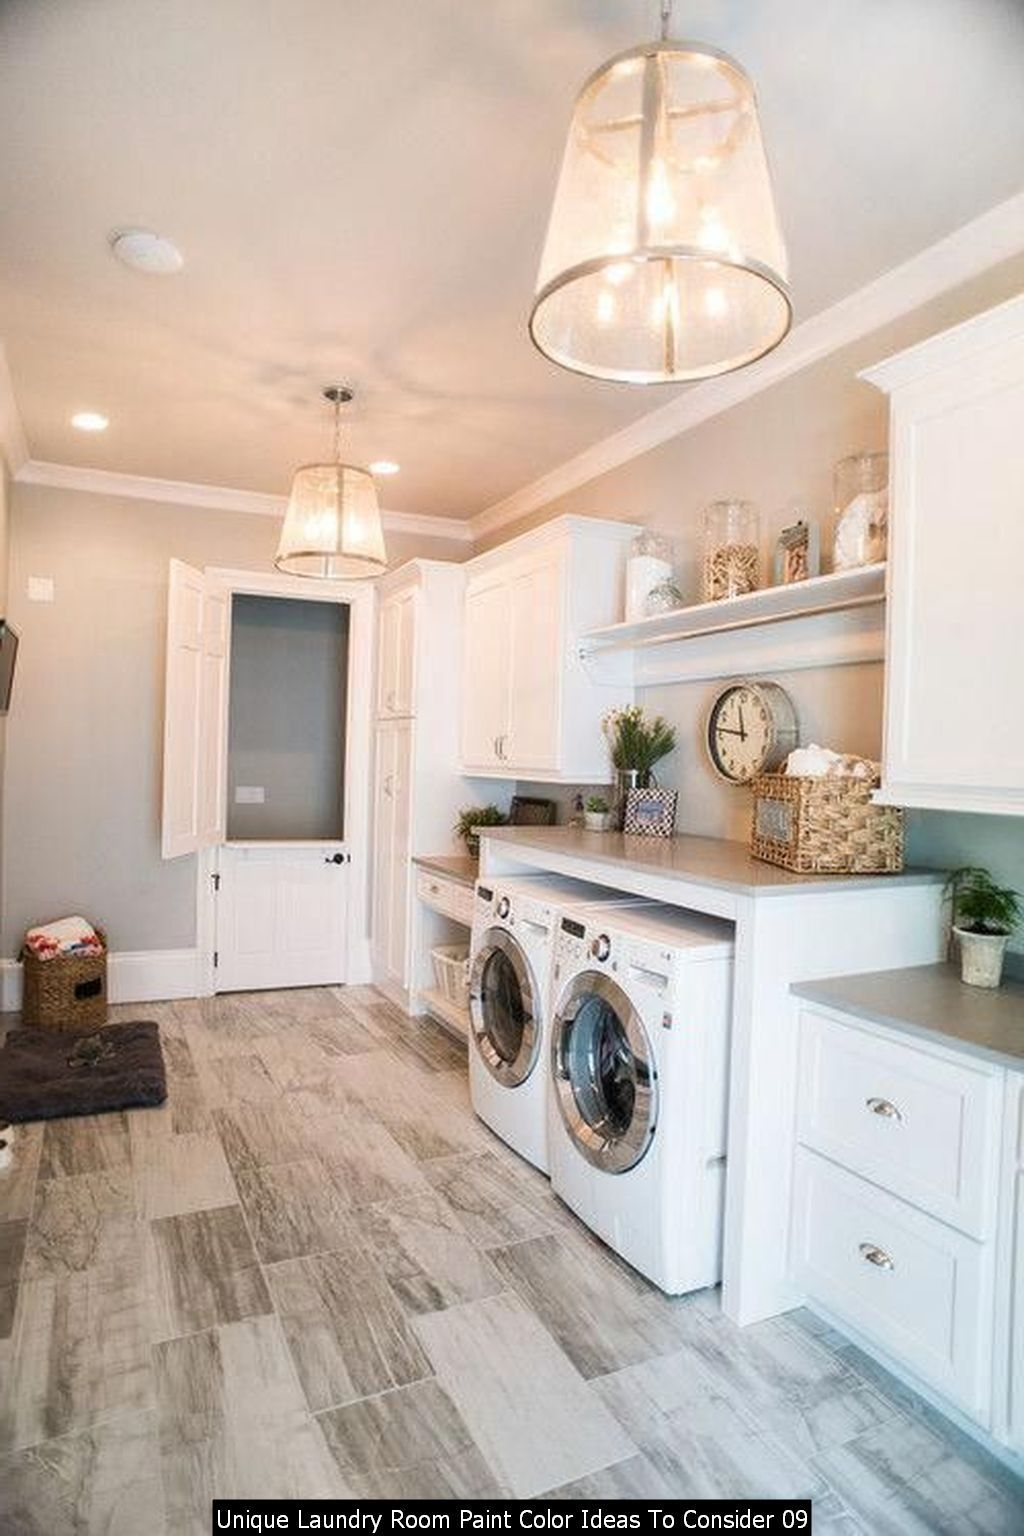 30 Unique Laundry Room Paint Color Ideas To Consider In 2020